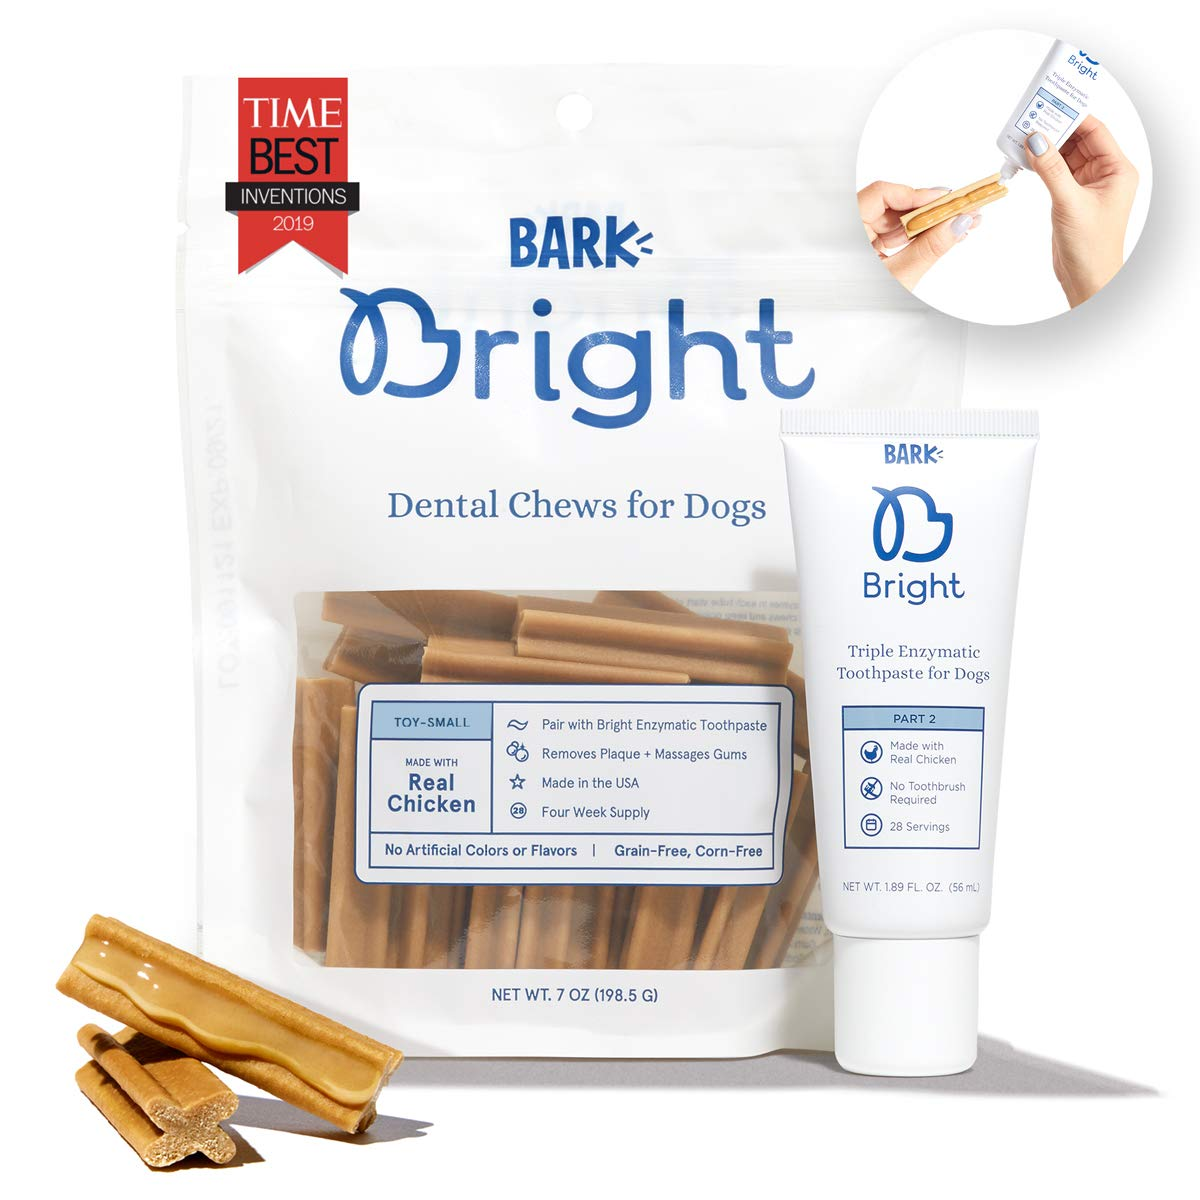 Barkbox Bright Brushless Dental Chews and Enzymatic Toothpaste Kit | 1-Month Supply | Vet-Recommended | for Dogs and Cats | Freshens Breath & Reduces Plaque Buildup | Made with Real Chicken